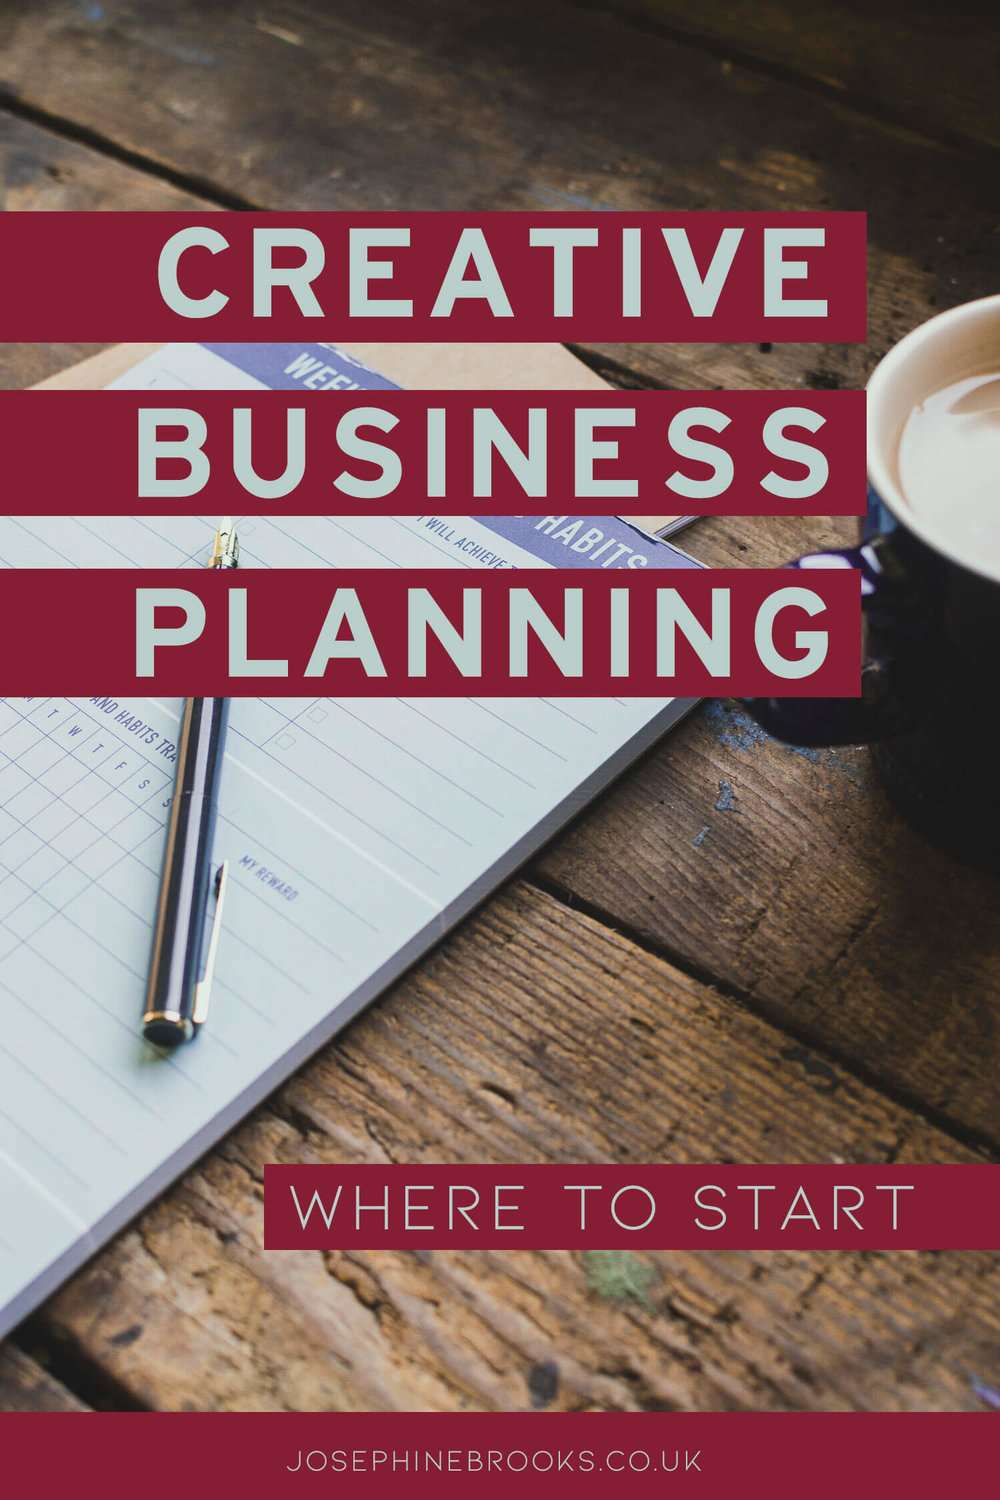 My top tips for creative business planning - creative business planning tips, setting business plans, handmade business planning